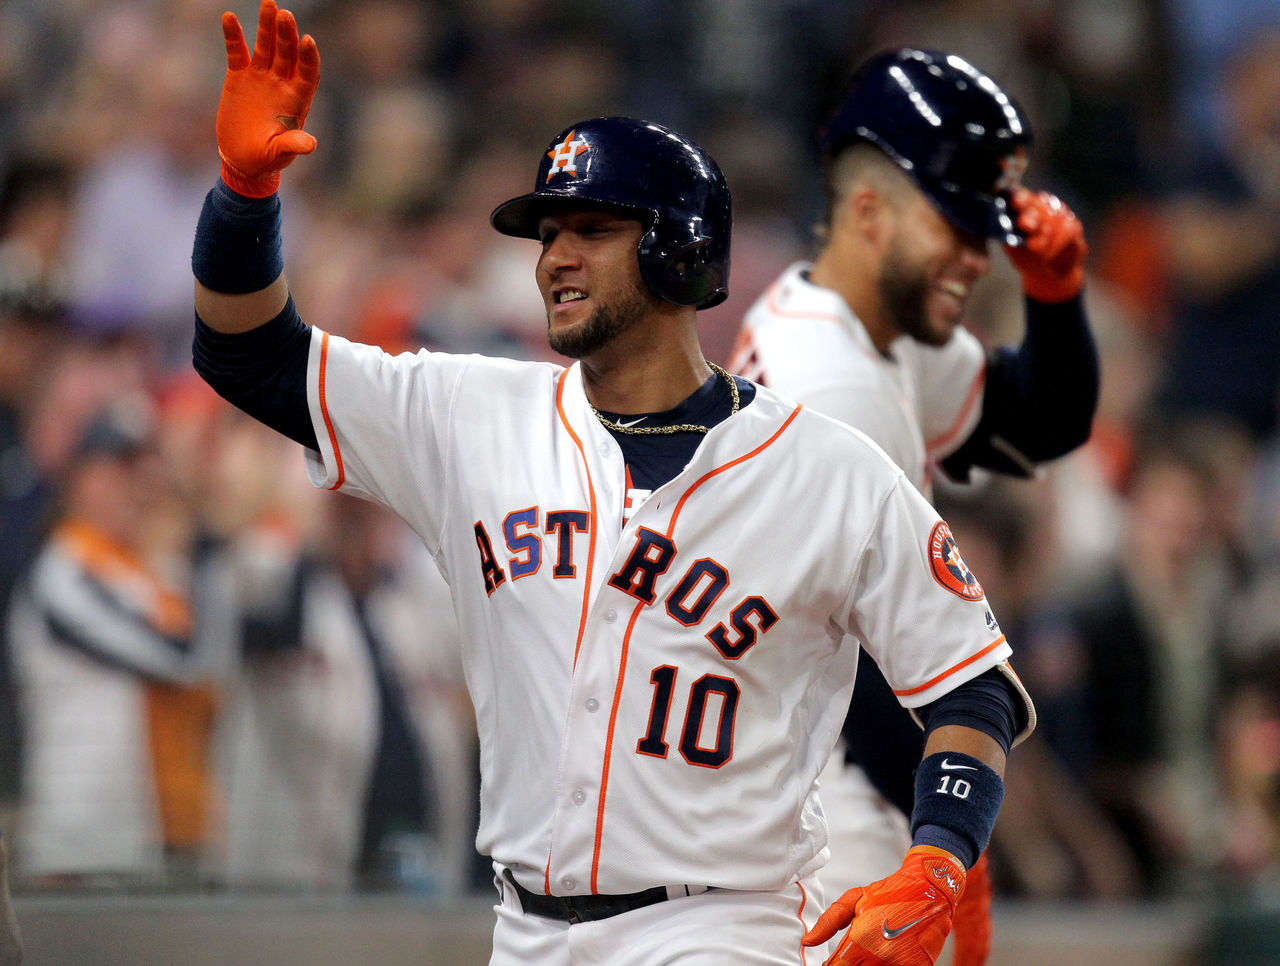 Cropped 2017 04 19t011852z 1379130949 nocid rtrmadp 3 mlb los angeles angels at houston astros